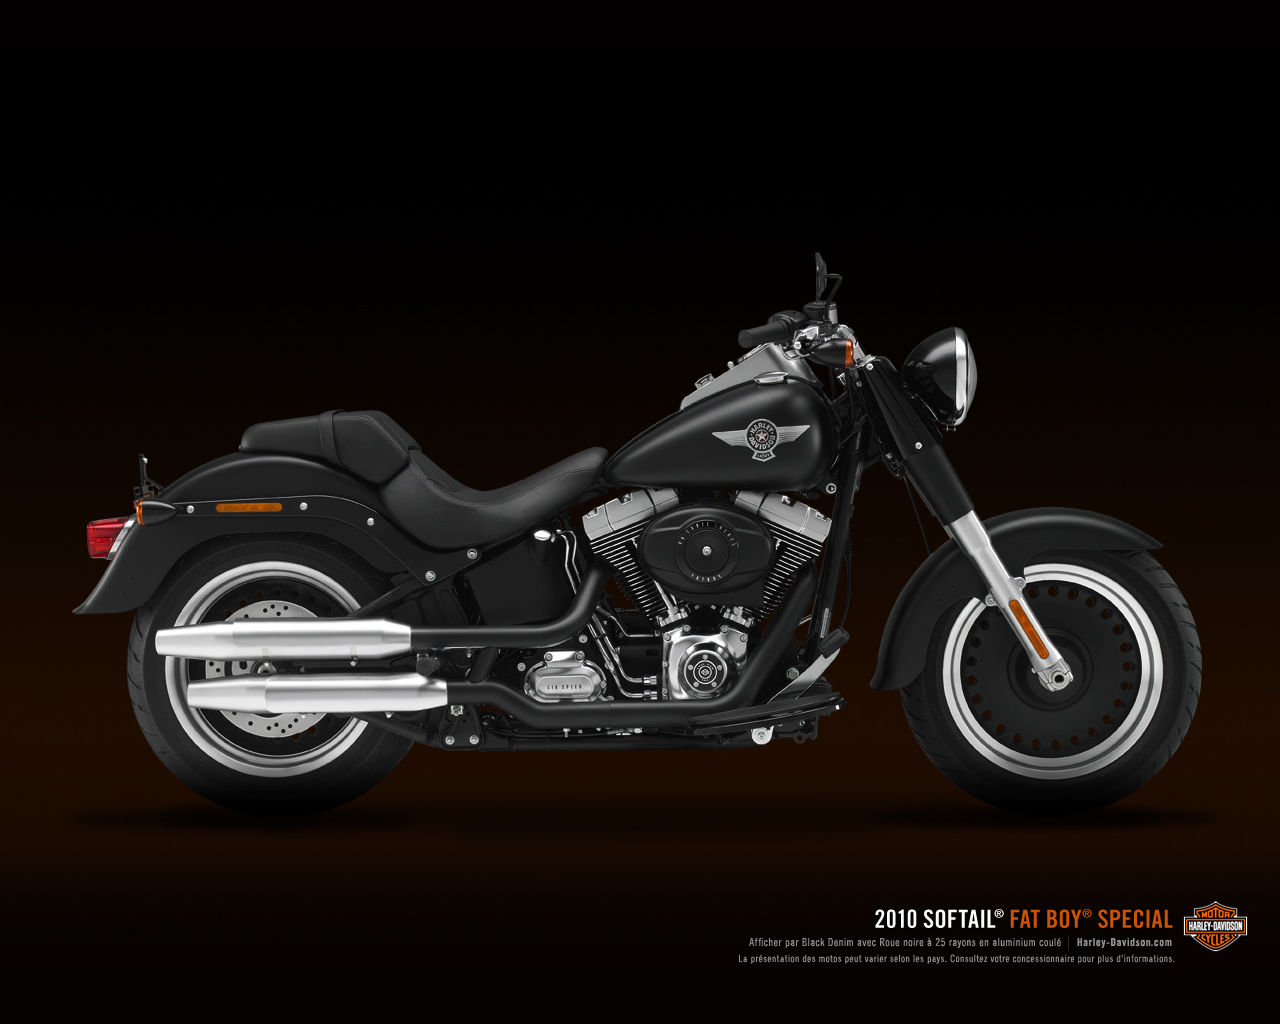 le forum harley davidson fat boy special 2010. Black Bedroom Furniture Sets. Home Design Ideas